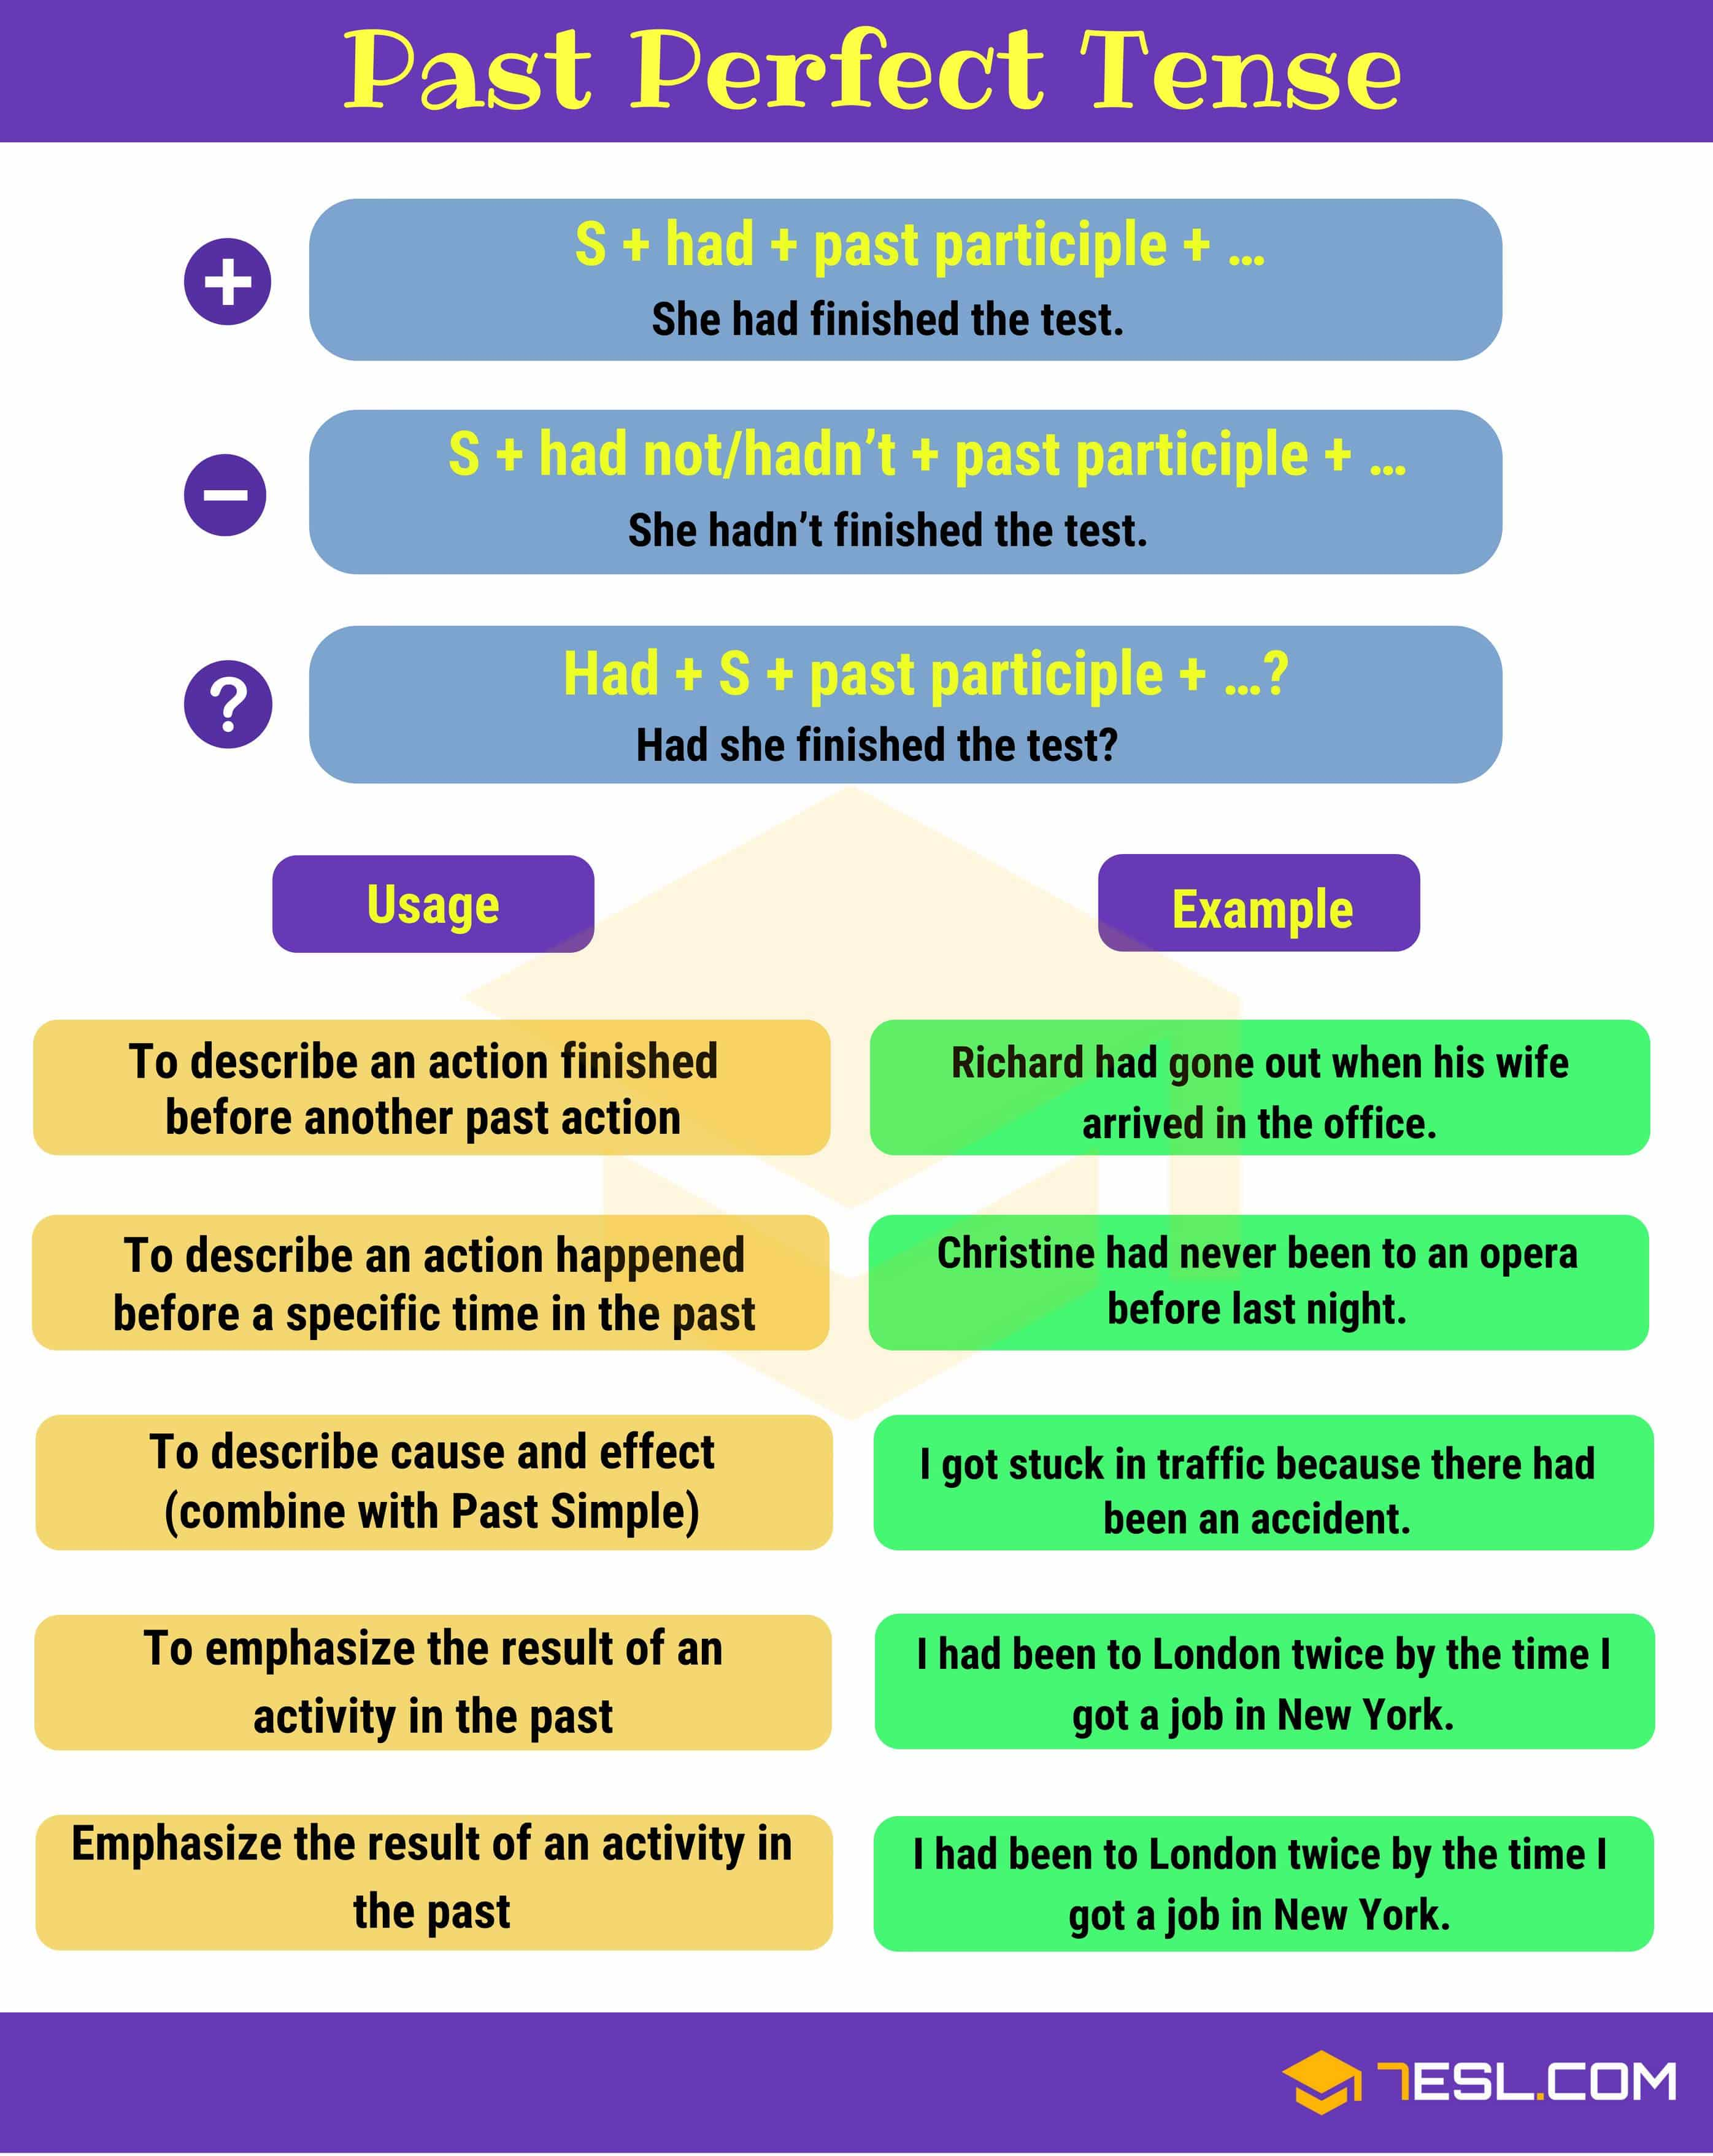 Past Perfect Tense Grammar Rules And Examples